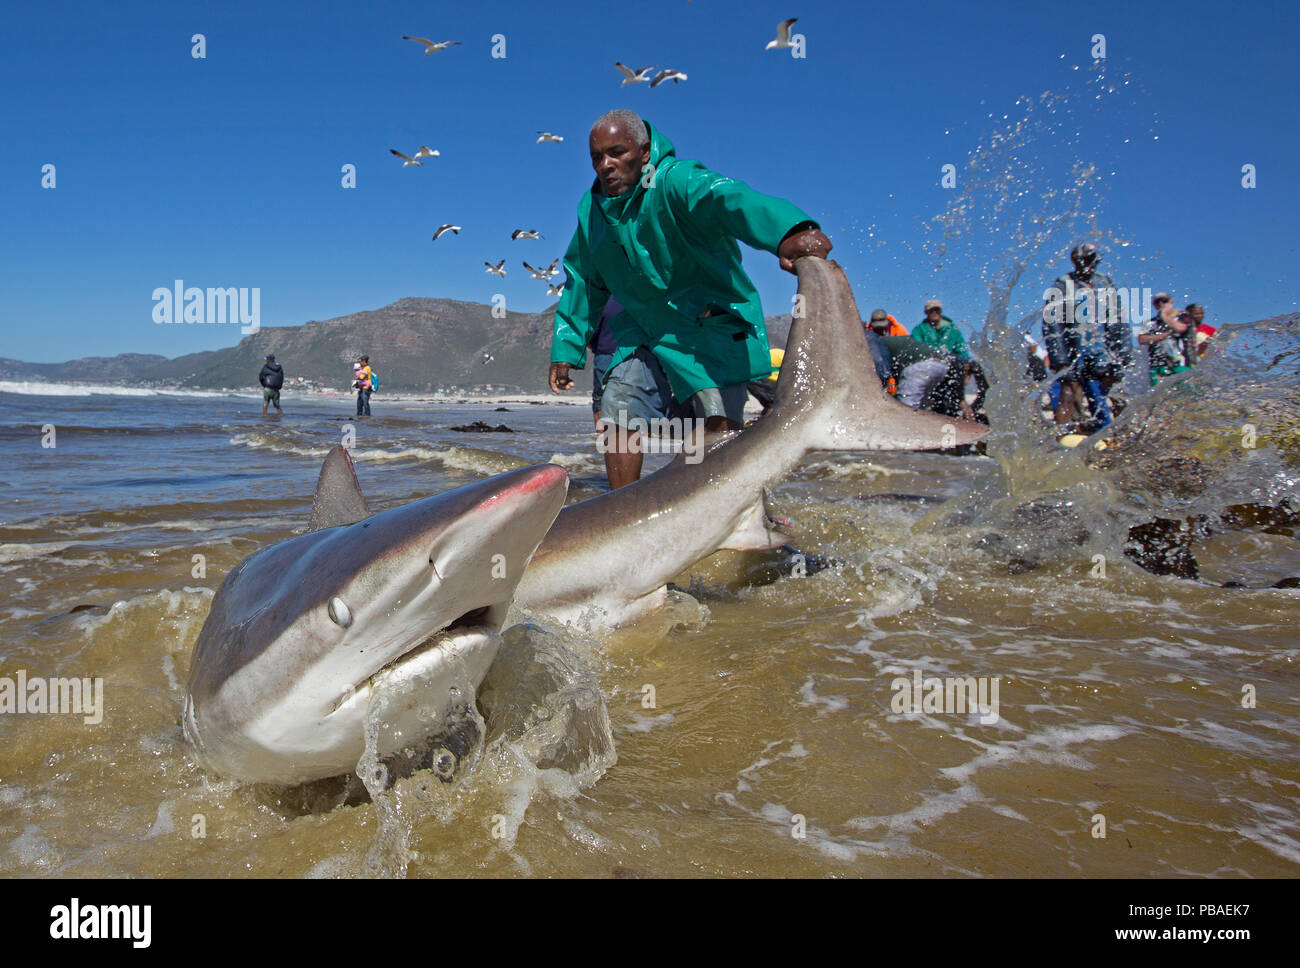 Bronze whaler shark (Carcharhinus brachyurus), caught in traditional seine net and released by fisherman, Muizenberg beach, Cape Town, South Africa, January 2014 - Stock Image